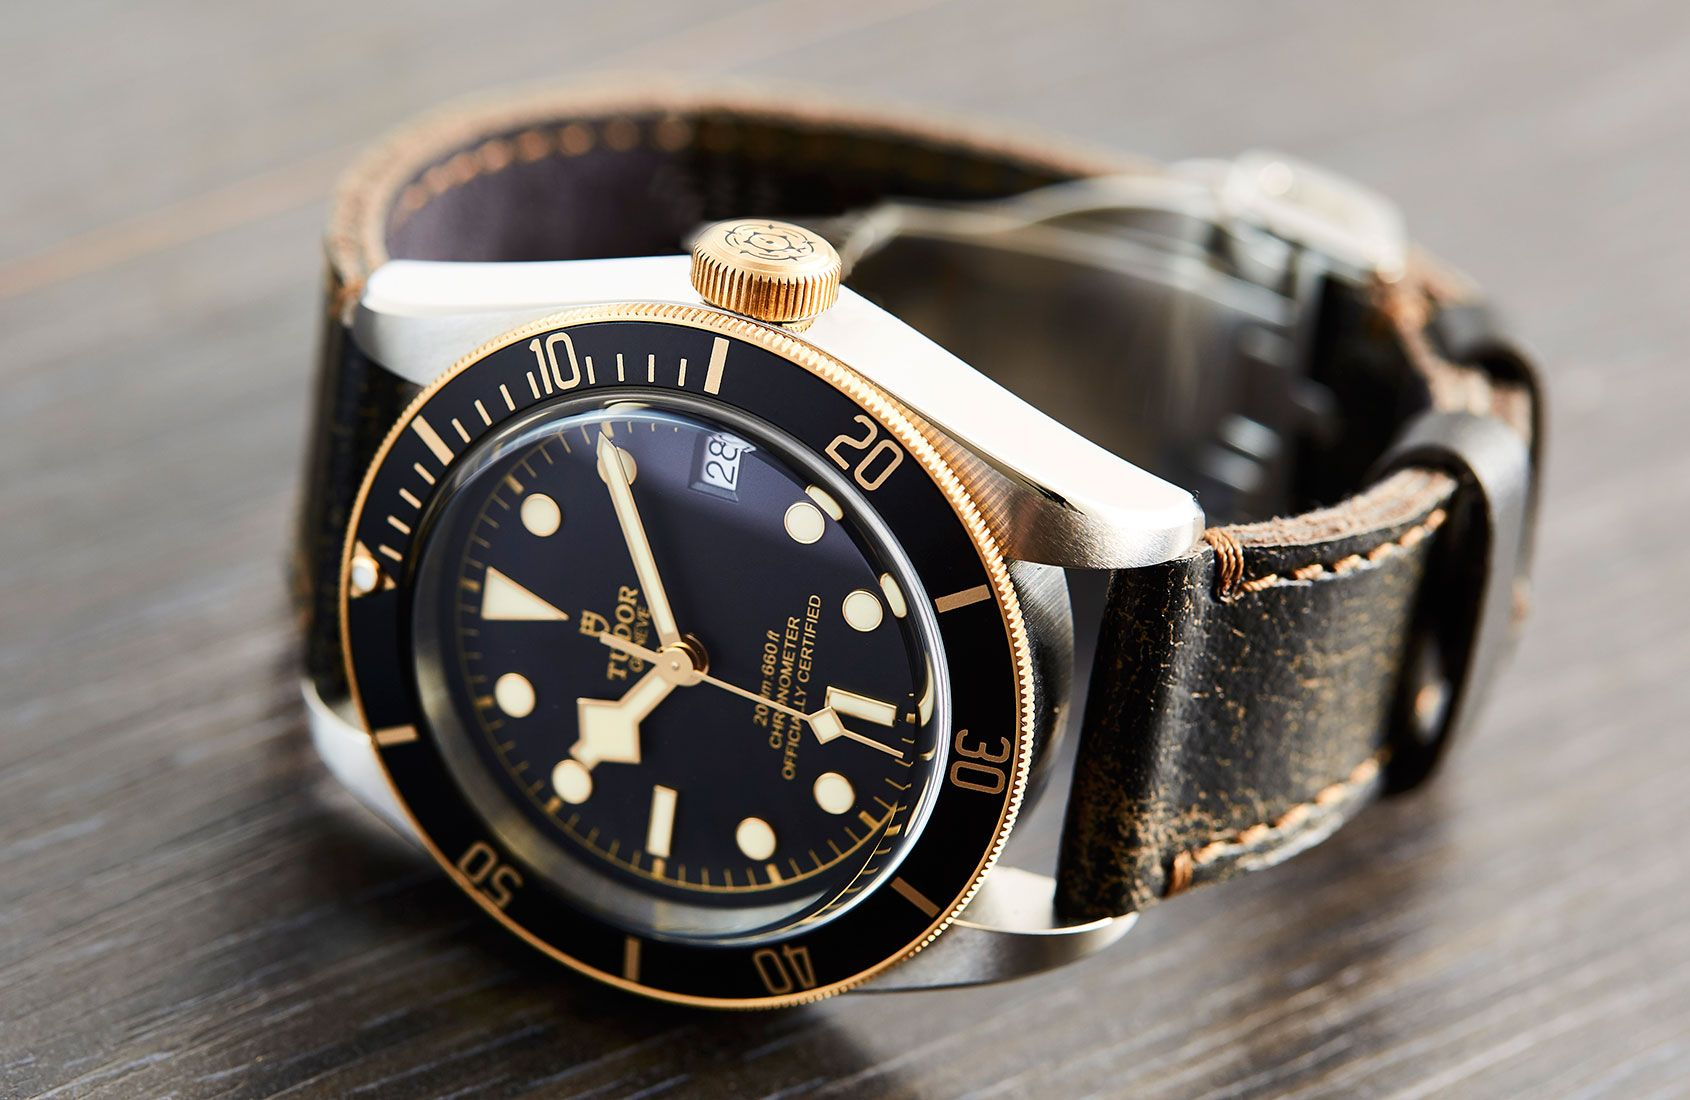 IN-DEPTH: The Tudor Heritage Black Bay S&G | Timepieces